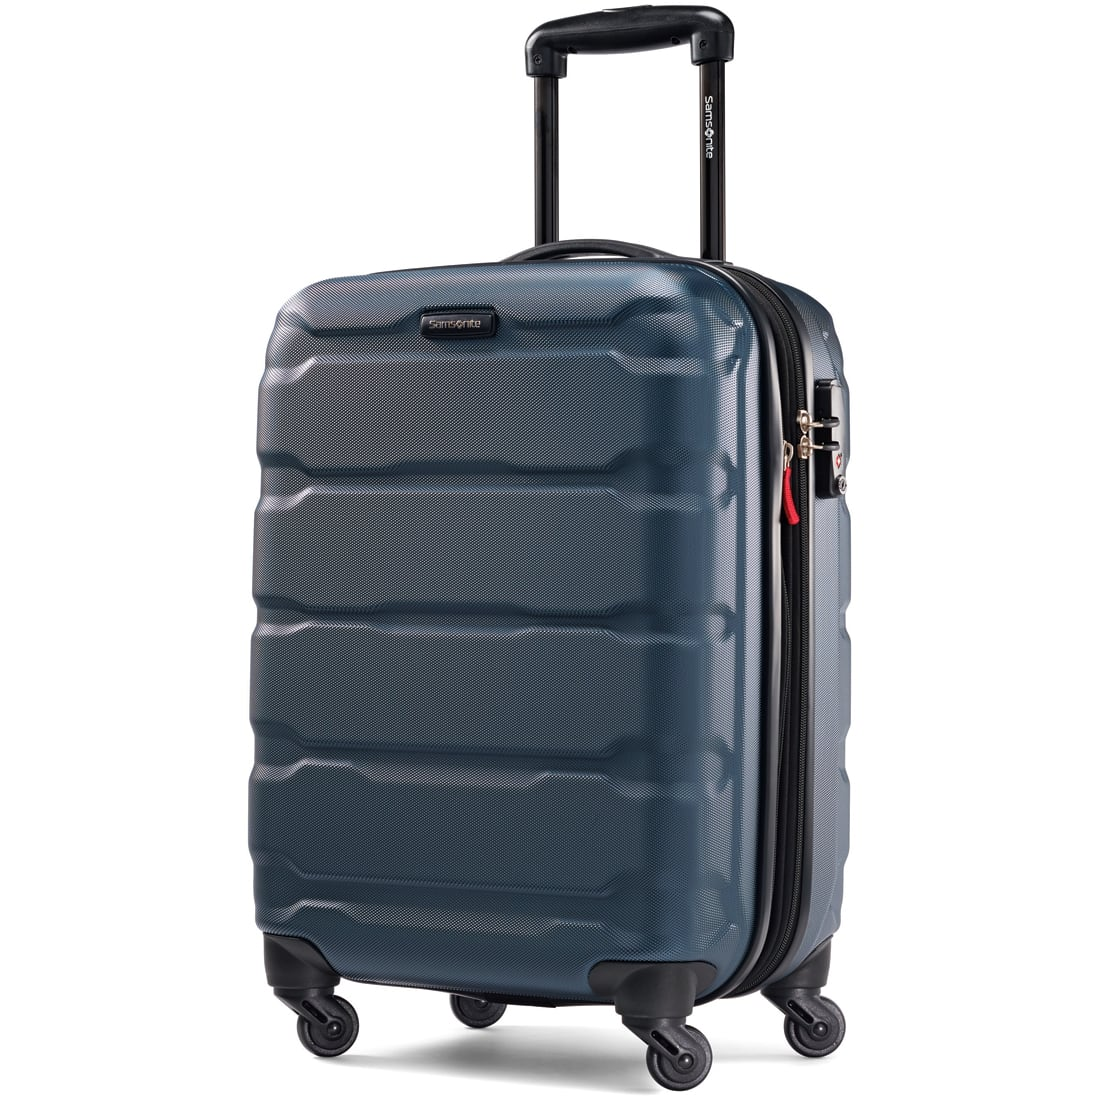 Samsonite Omni 20 Inch Hardside Spinner Luggage Suitcase (Various Colors) $59.99 + Free Shipping